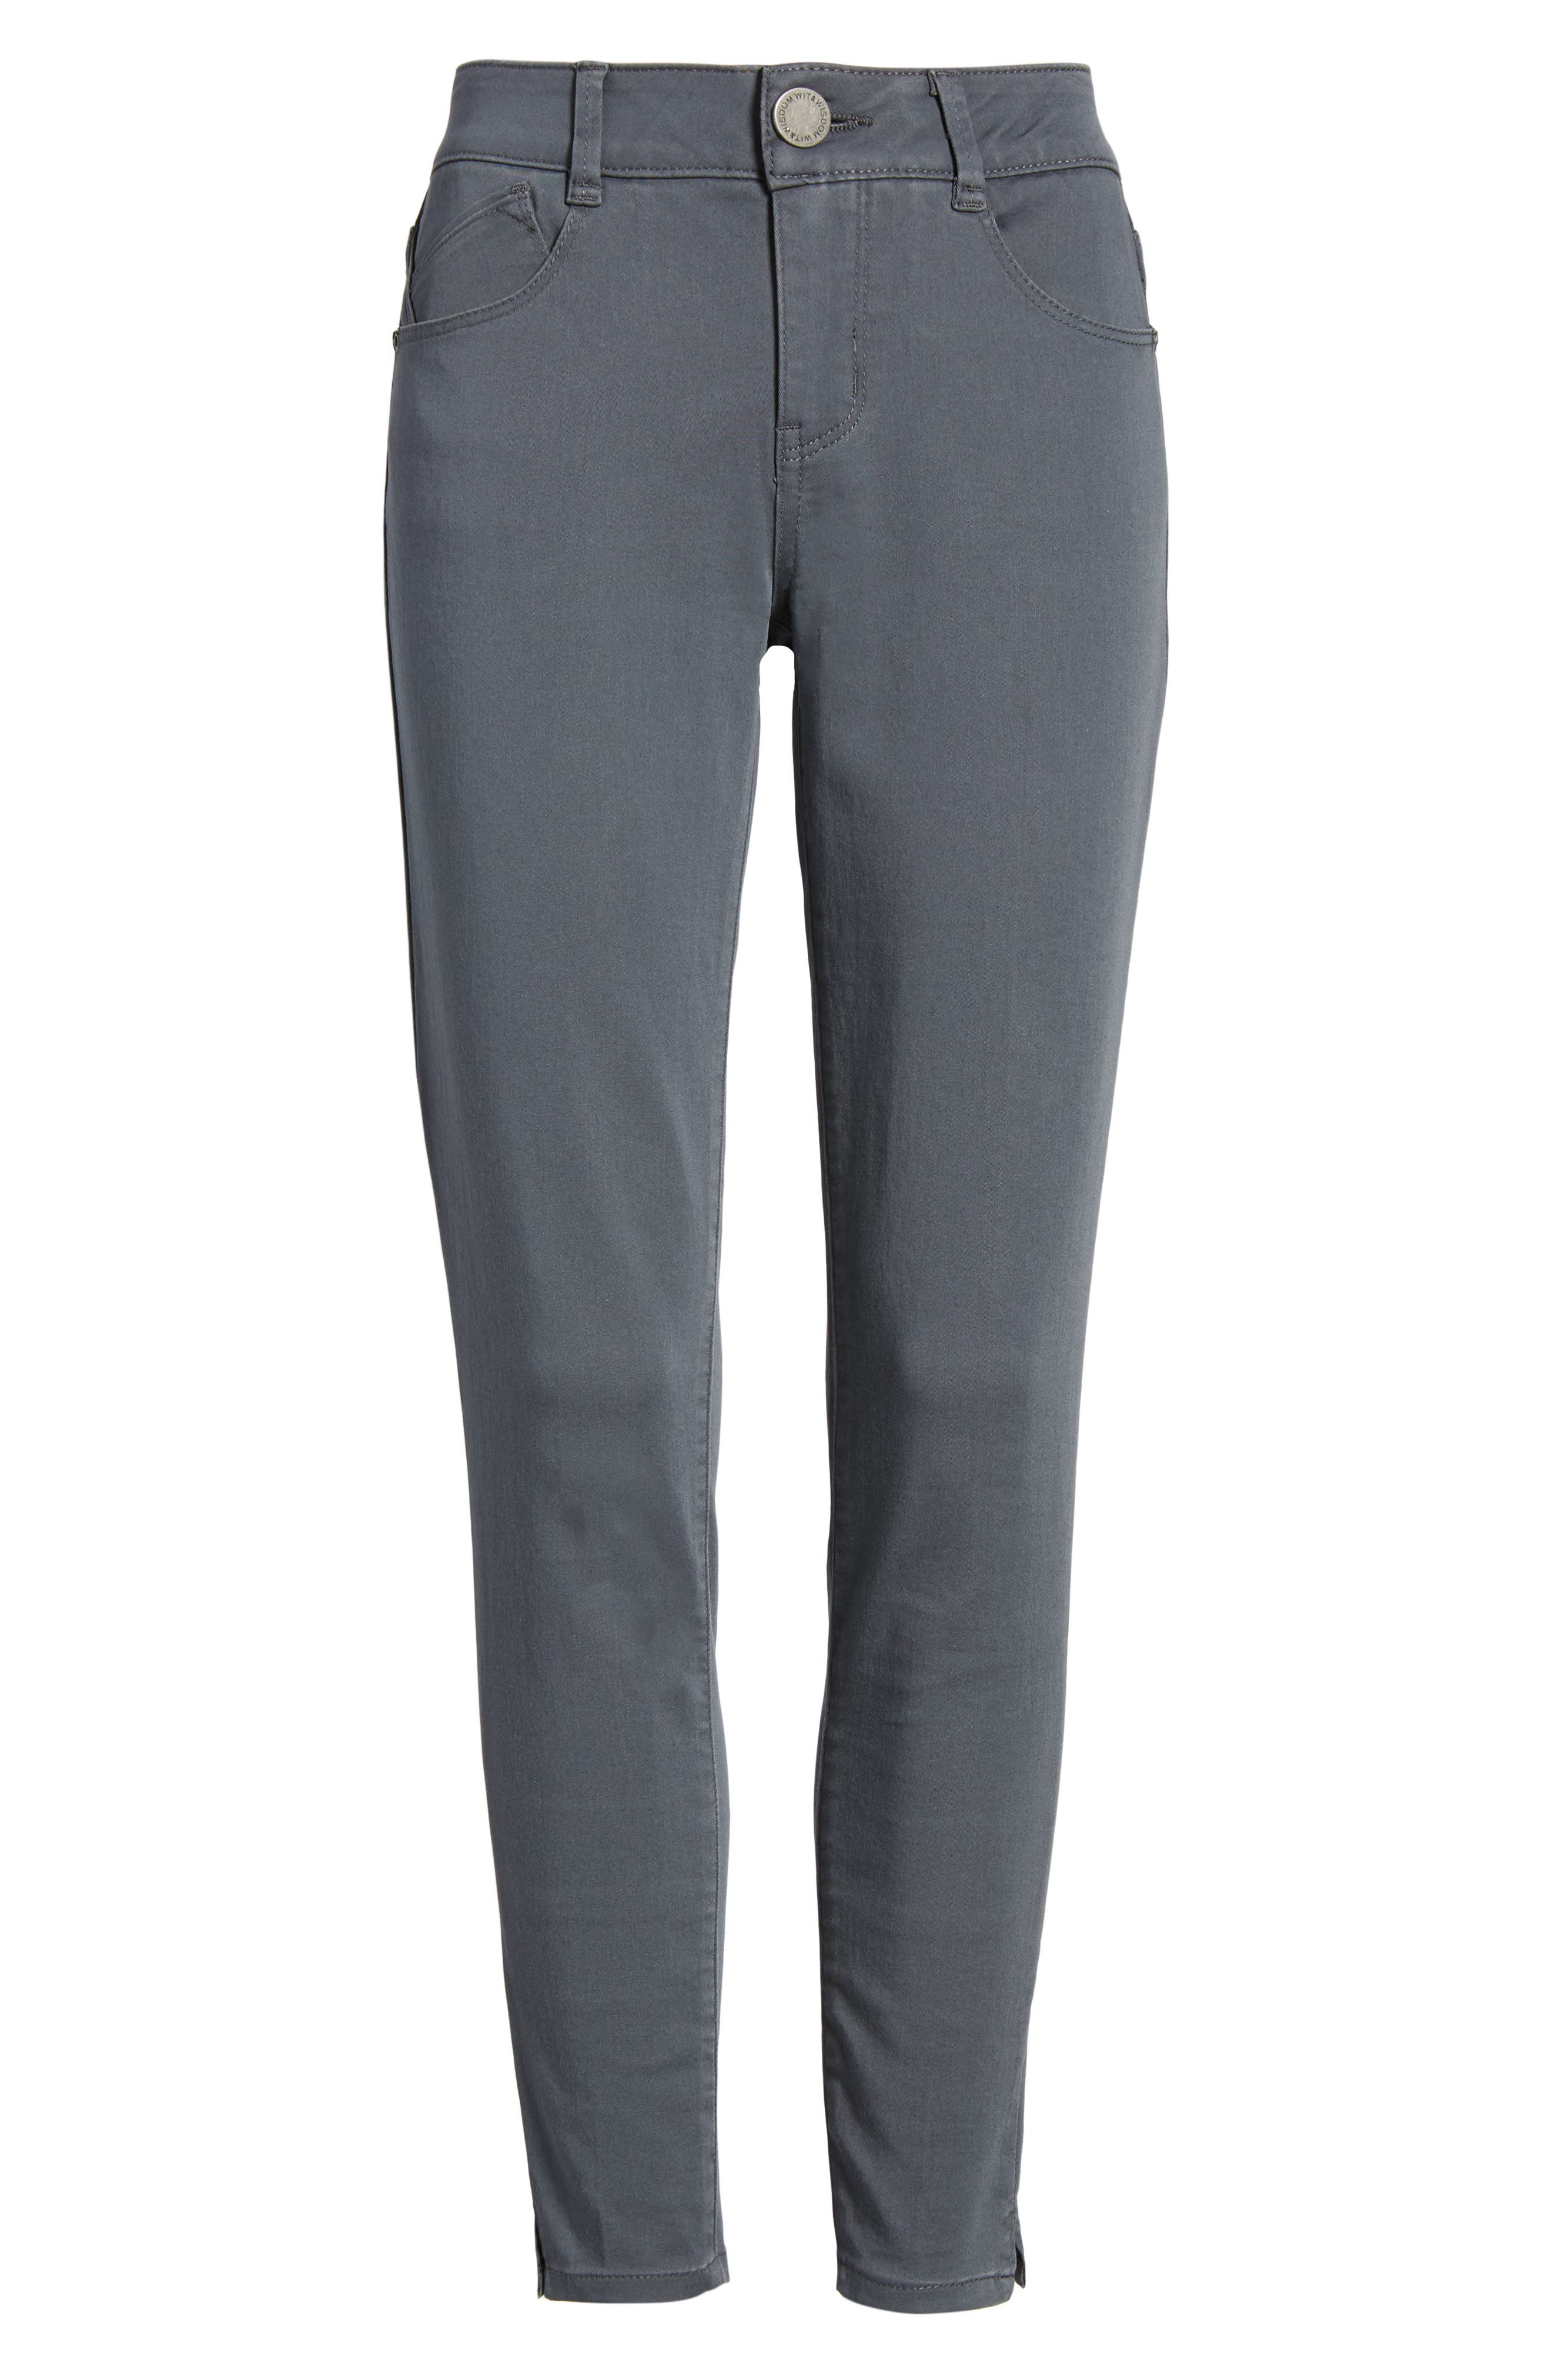 Ab-solution Stretch Twill Skinny Pants,                             Alternate thumbnail 6, color,                             050